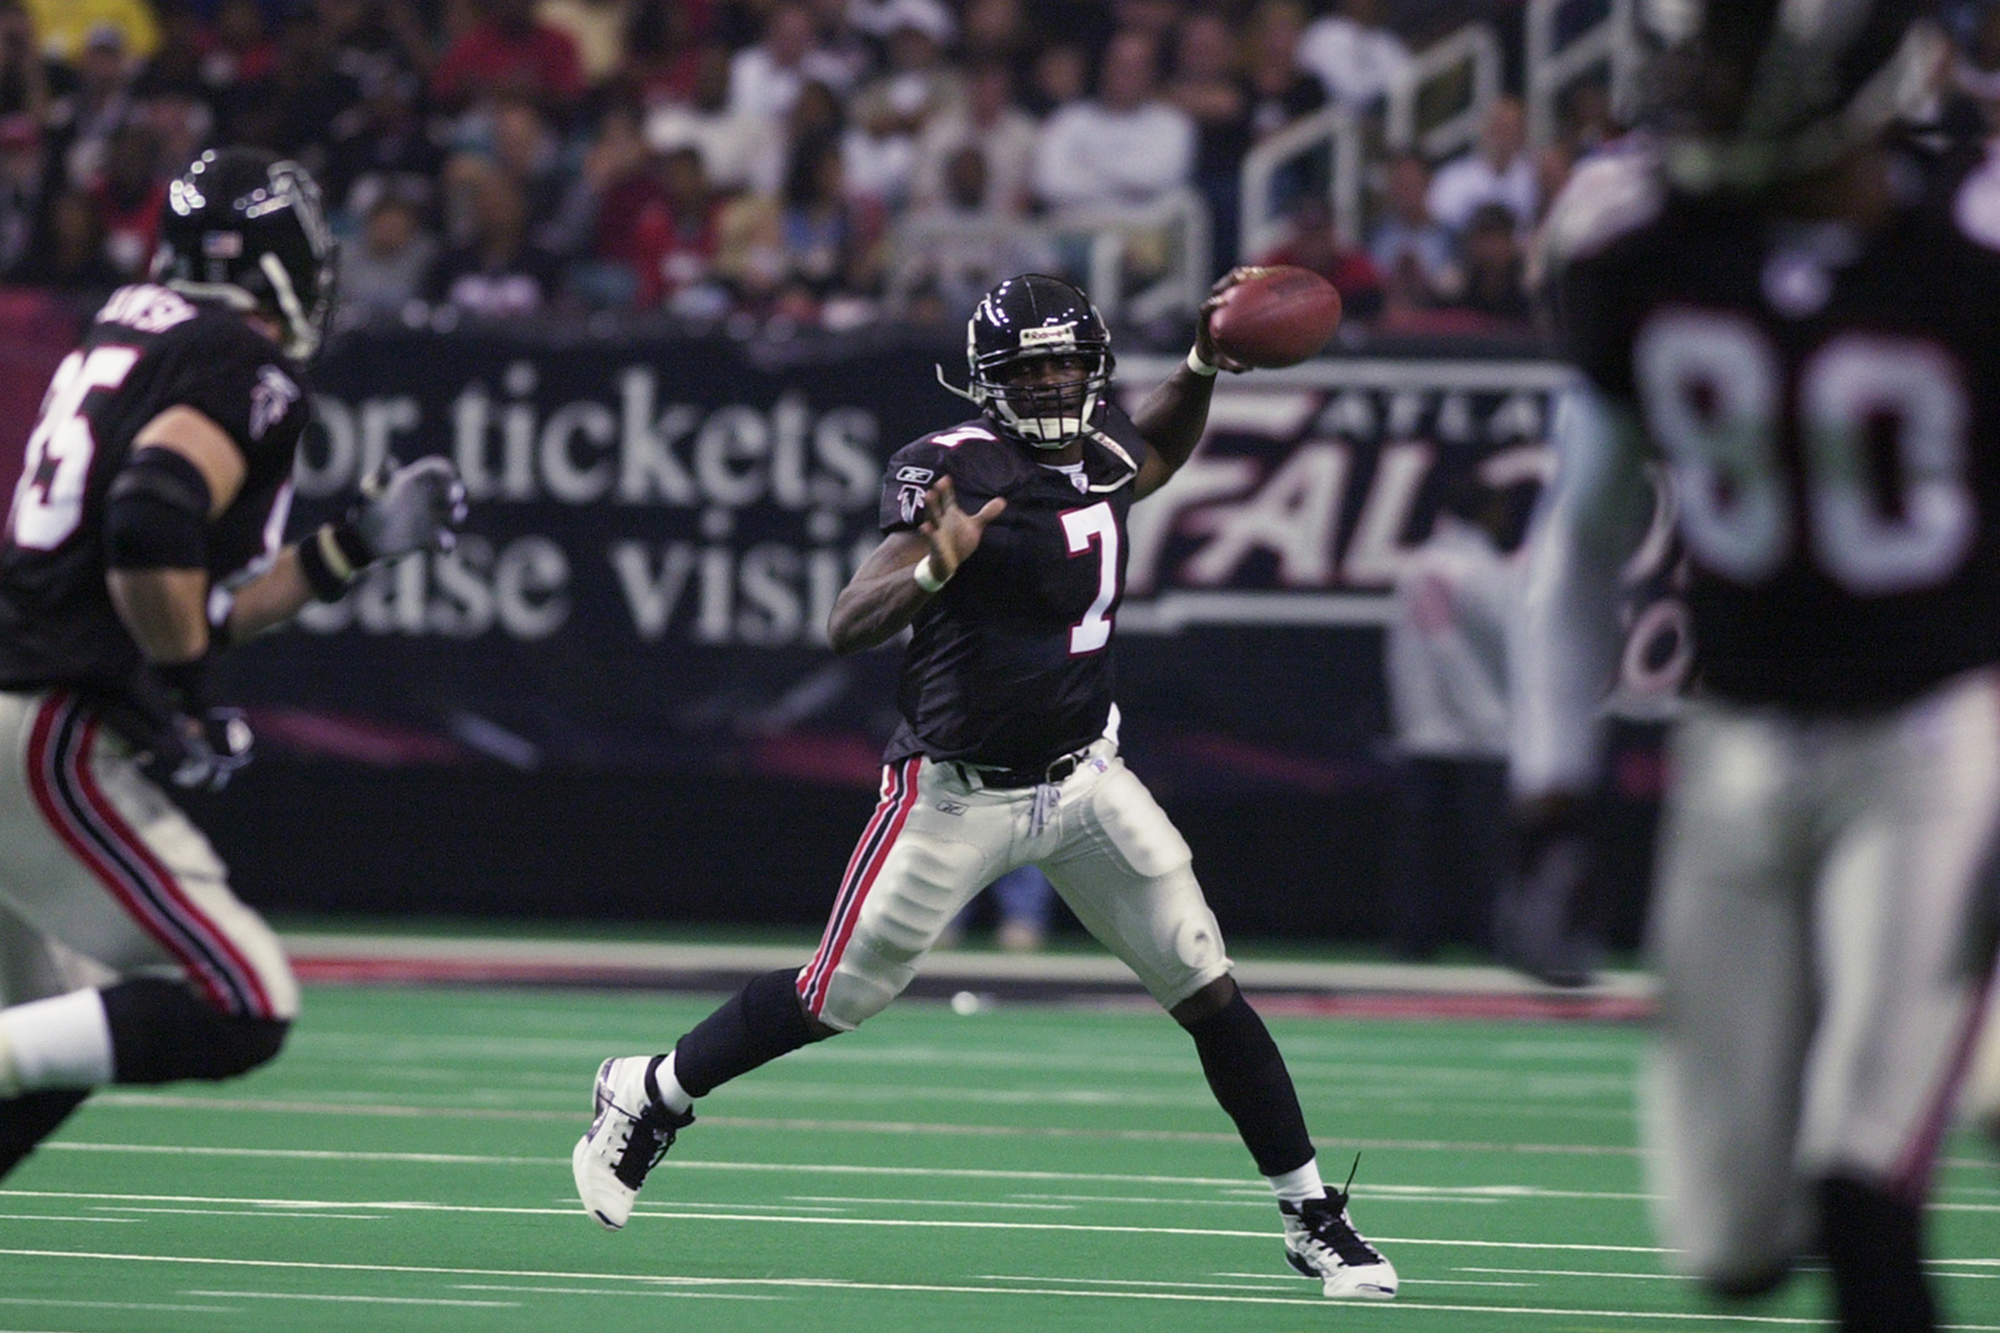 On the way to his Nike Zoom Vick 1s Michael Vick sent Air